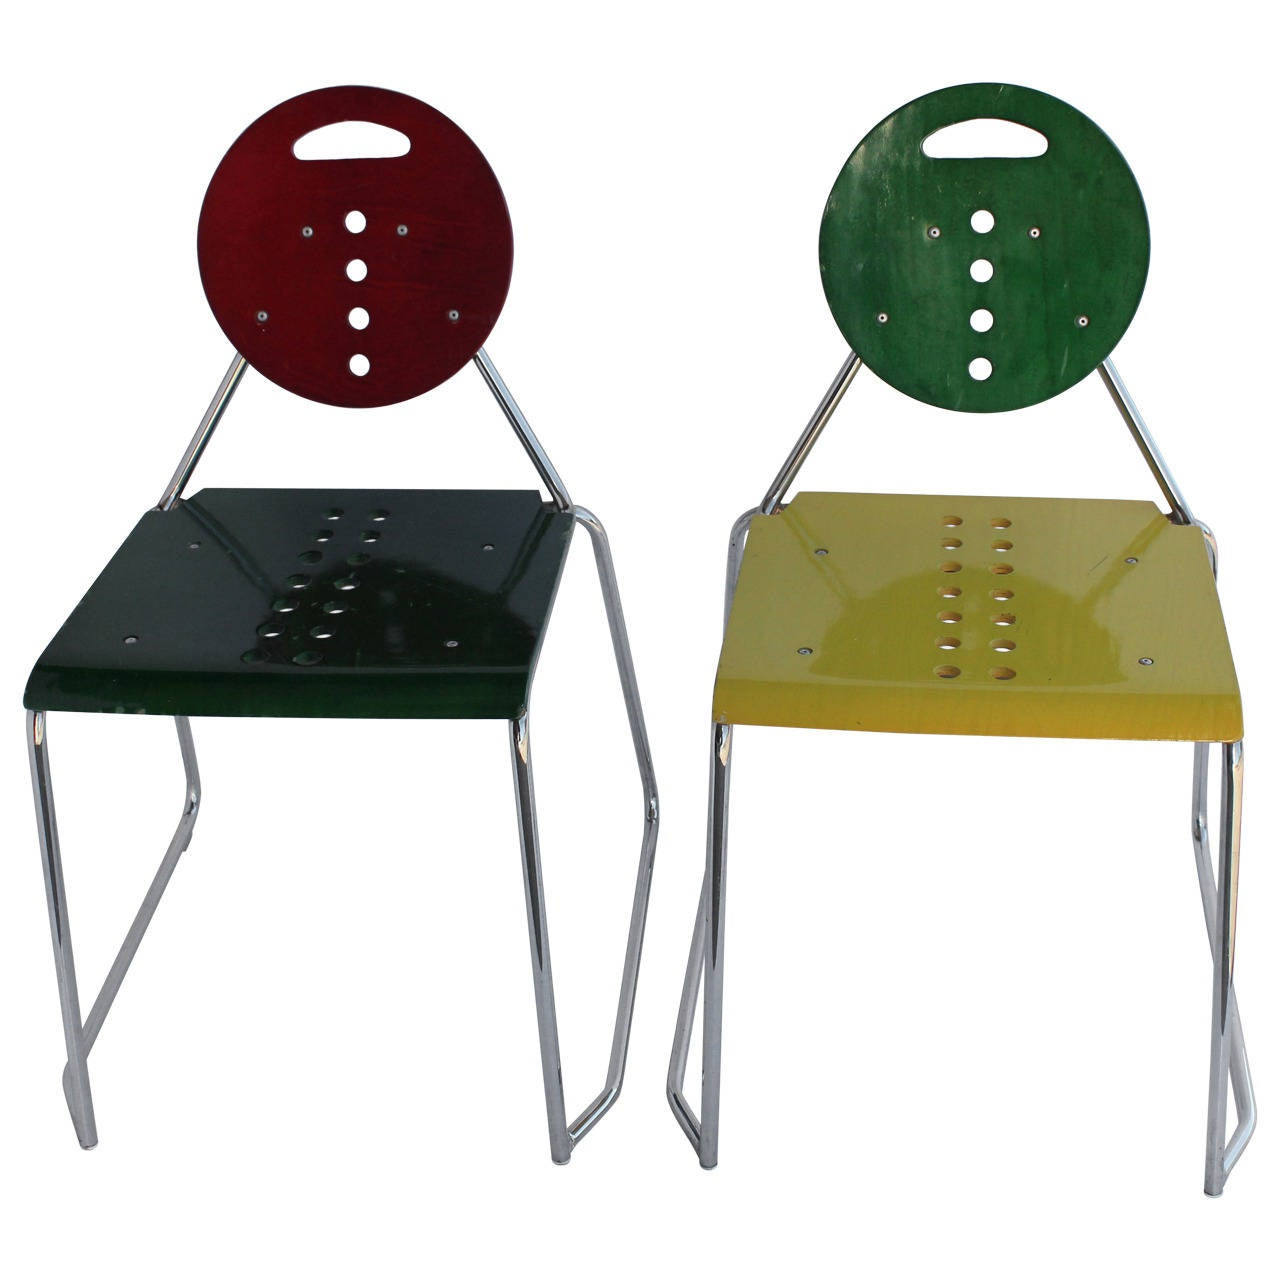 1980s memphis style italian charlie chairs by bimbi for 1980s chair design